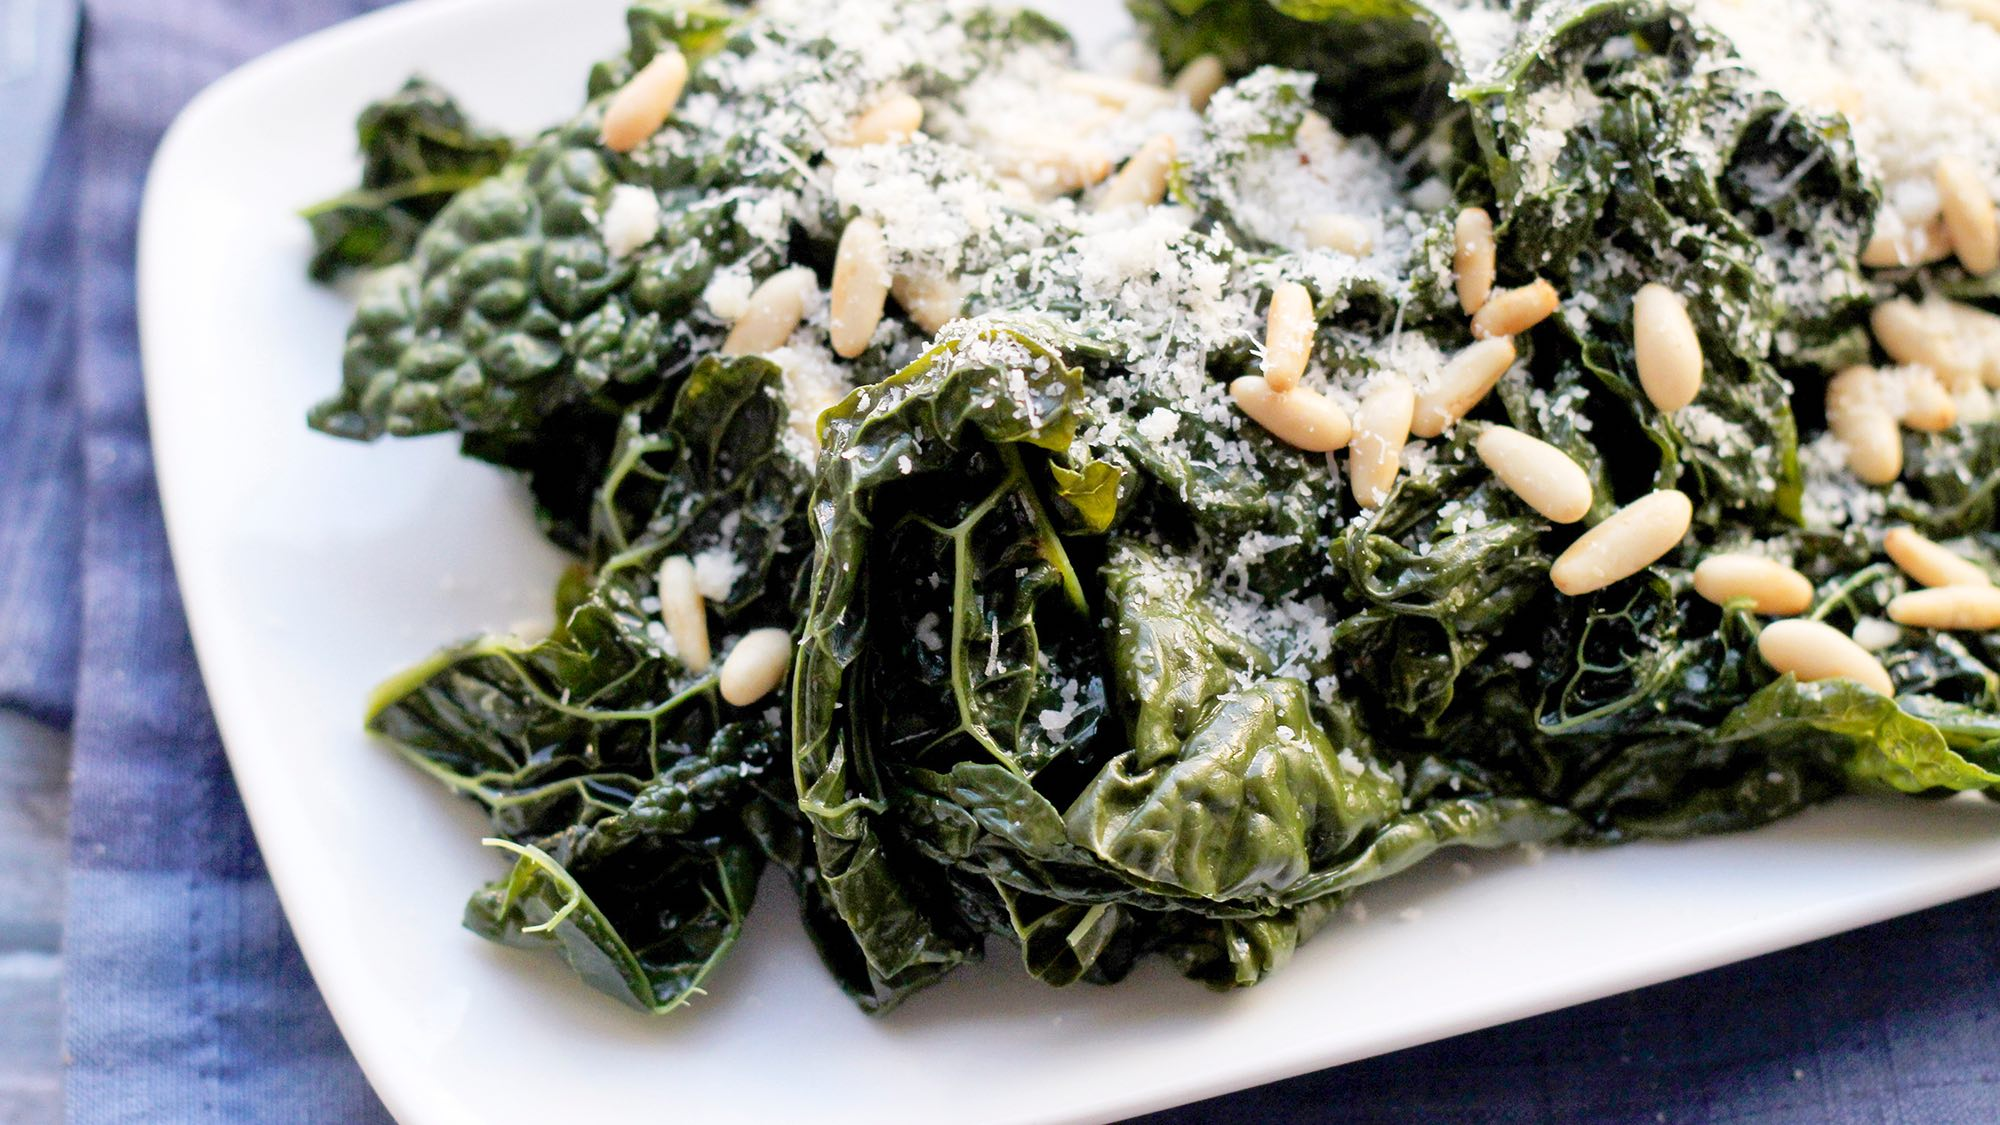 McCormick Sautéed Greens With Pine Nuts & Parmesan Cheese